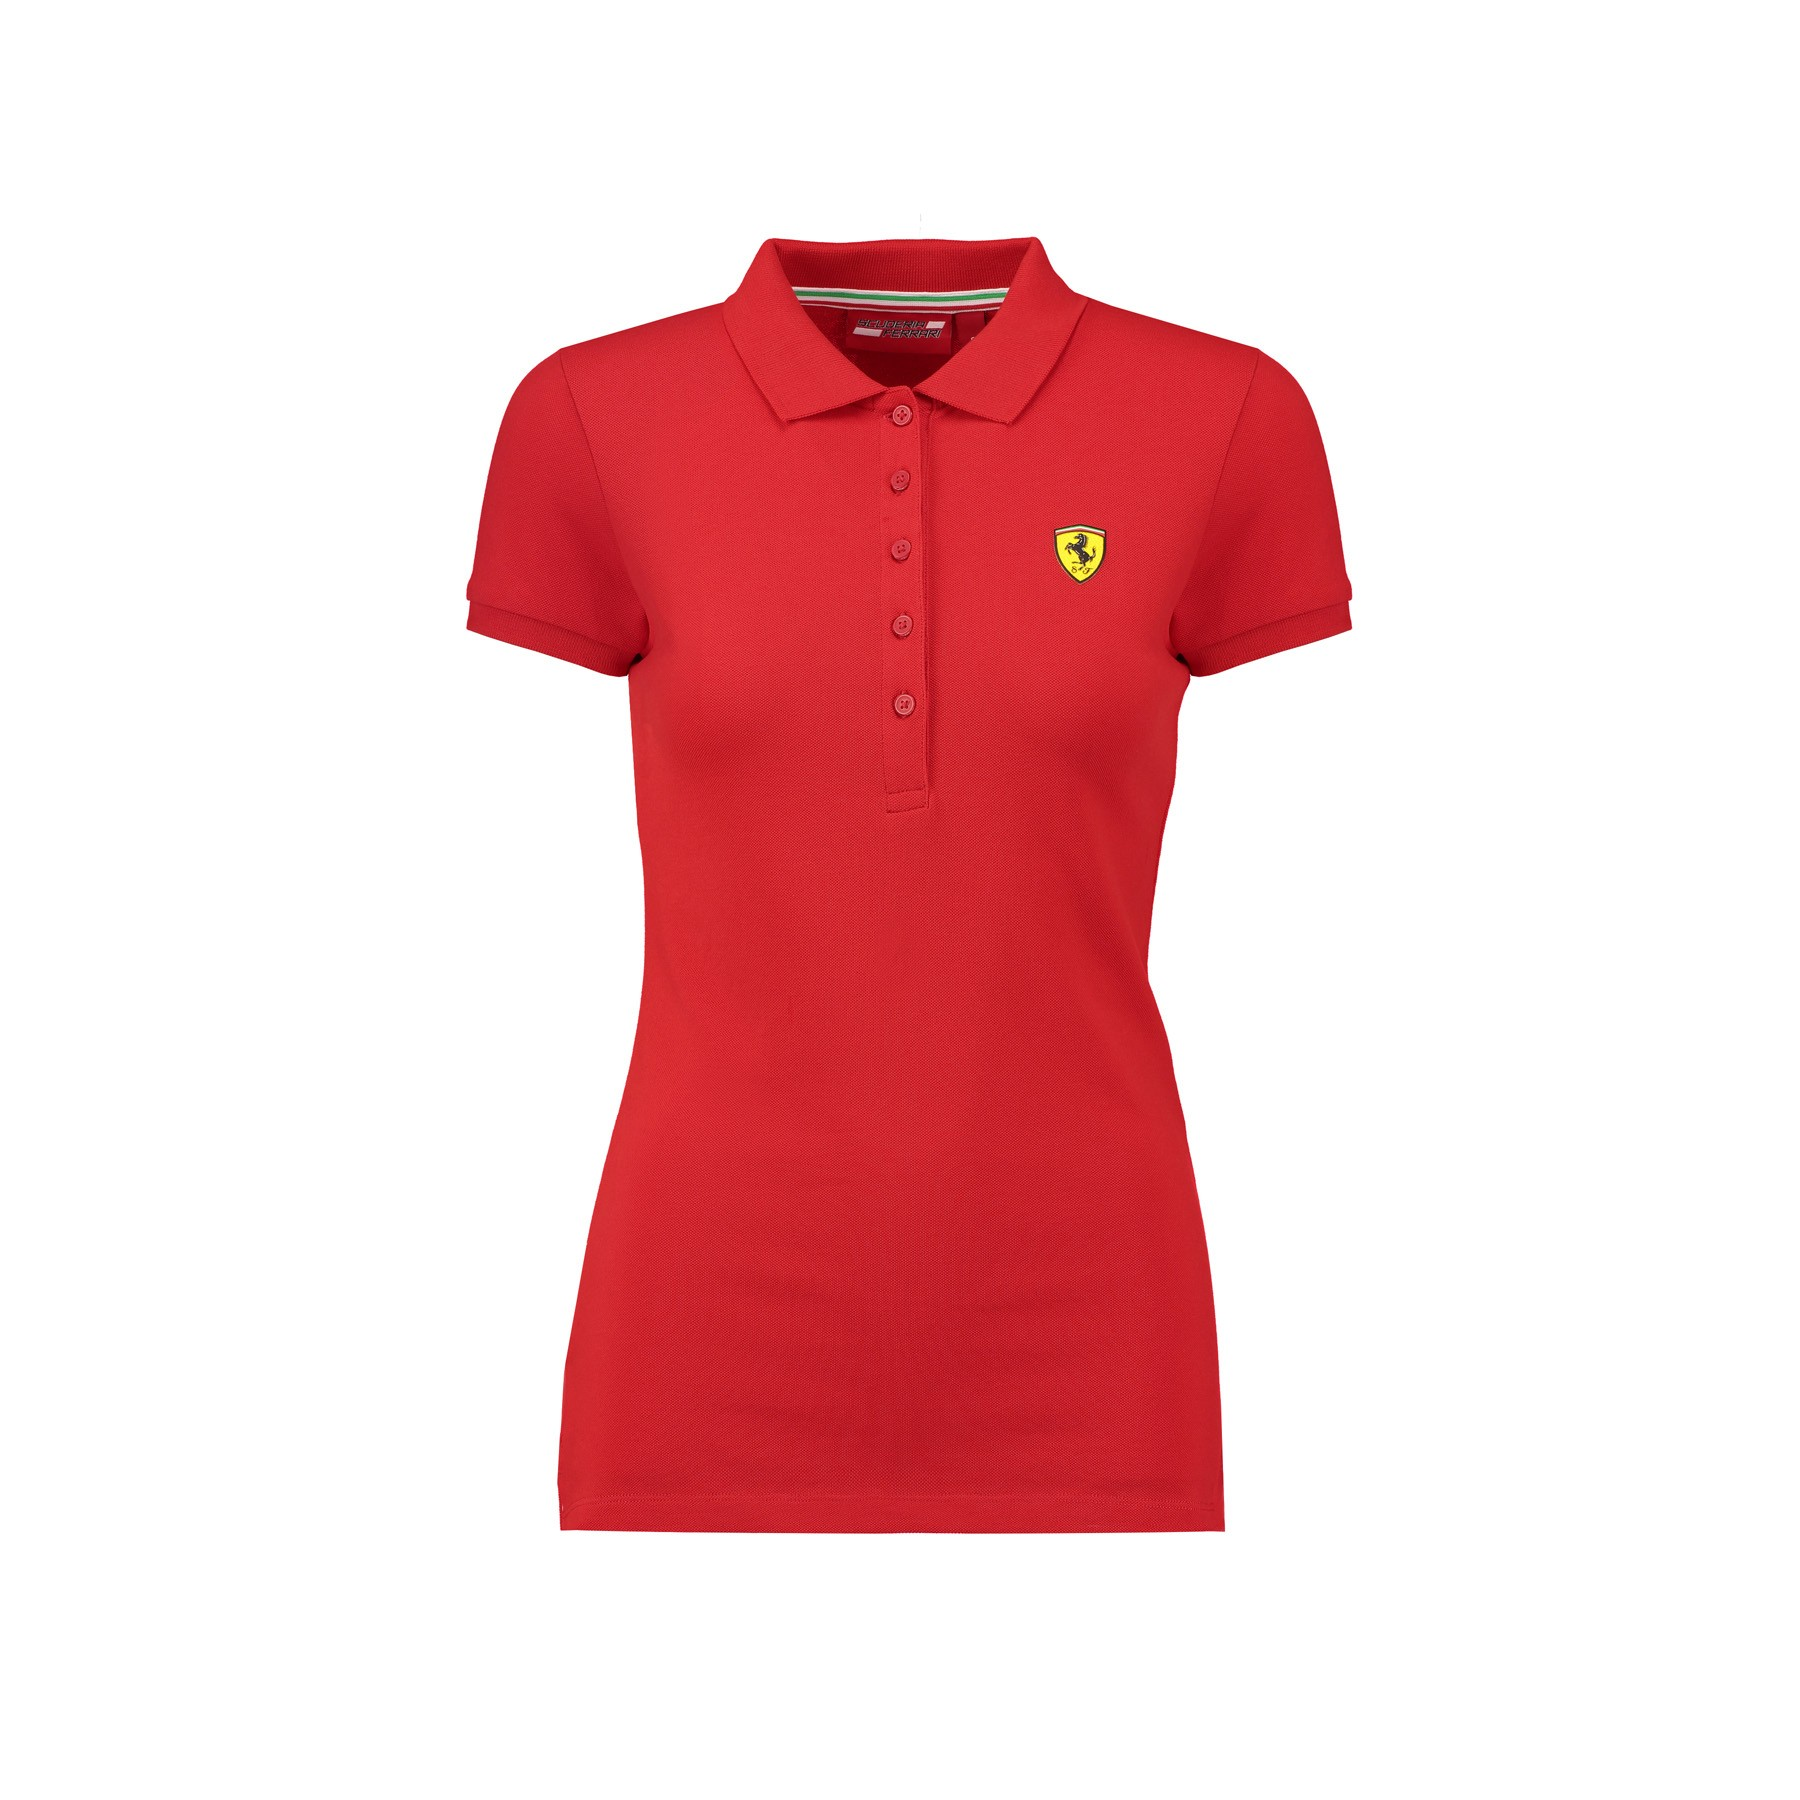 1e3e3d192 Sentinel 2018 Scuderia Ferrari Womens Ladies Classic Polo Shirt in Cotton  Sizes XXS-XL